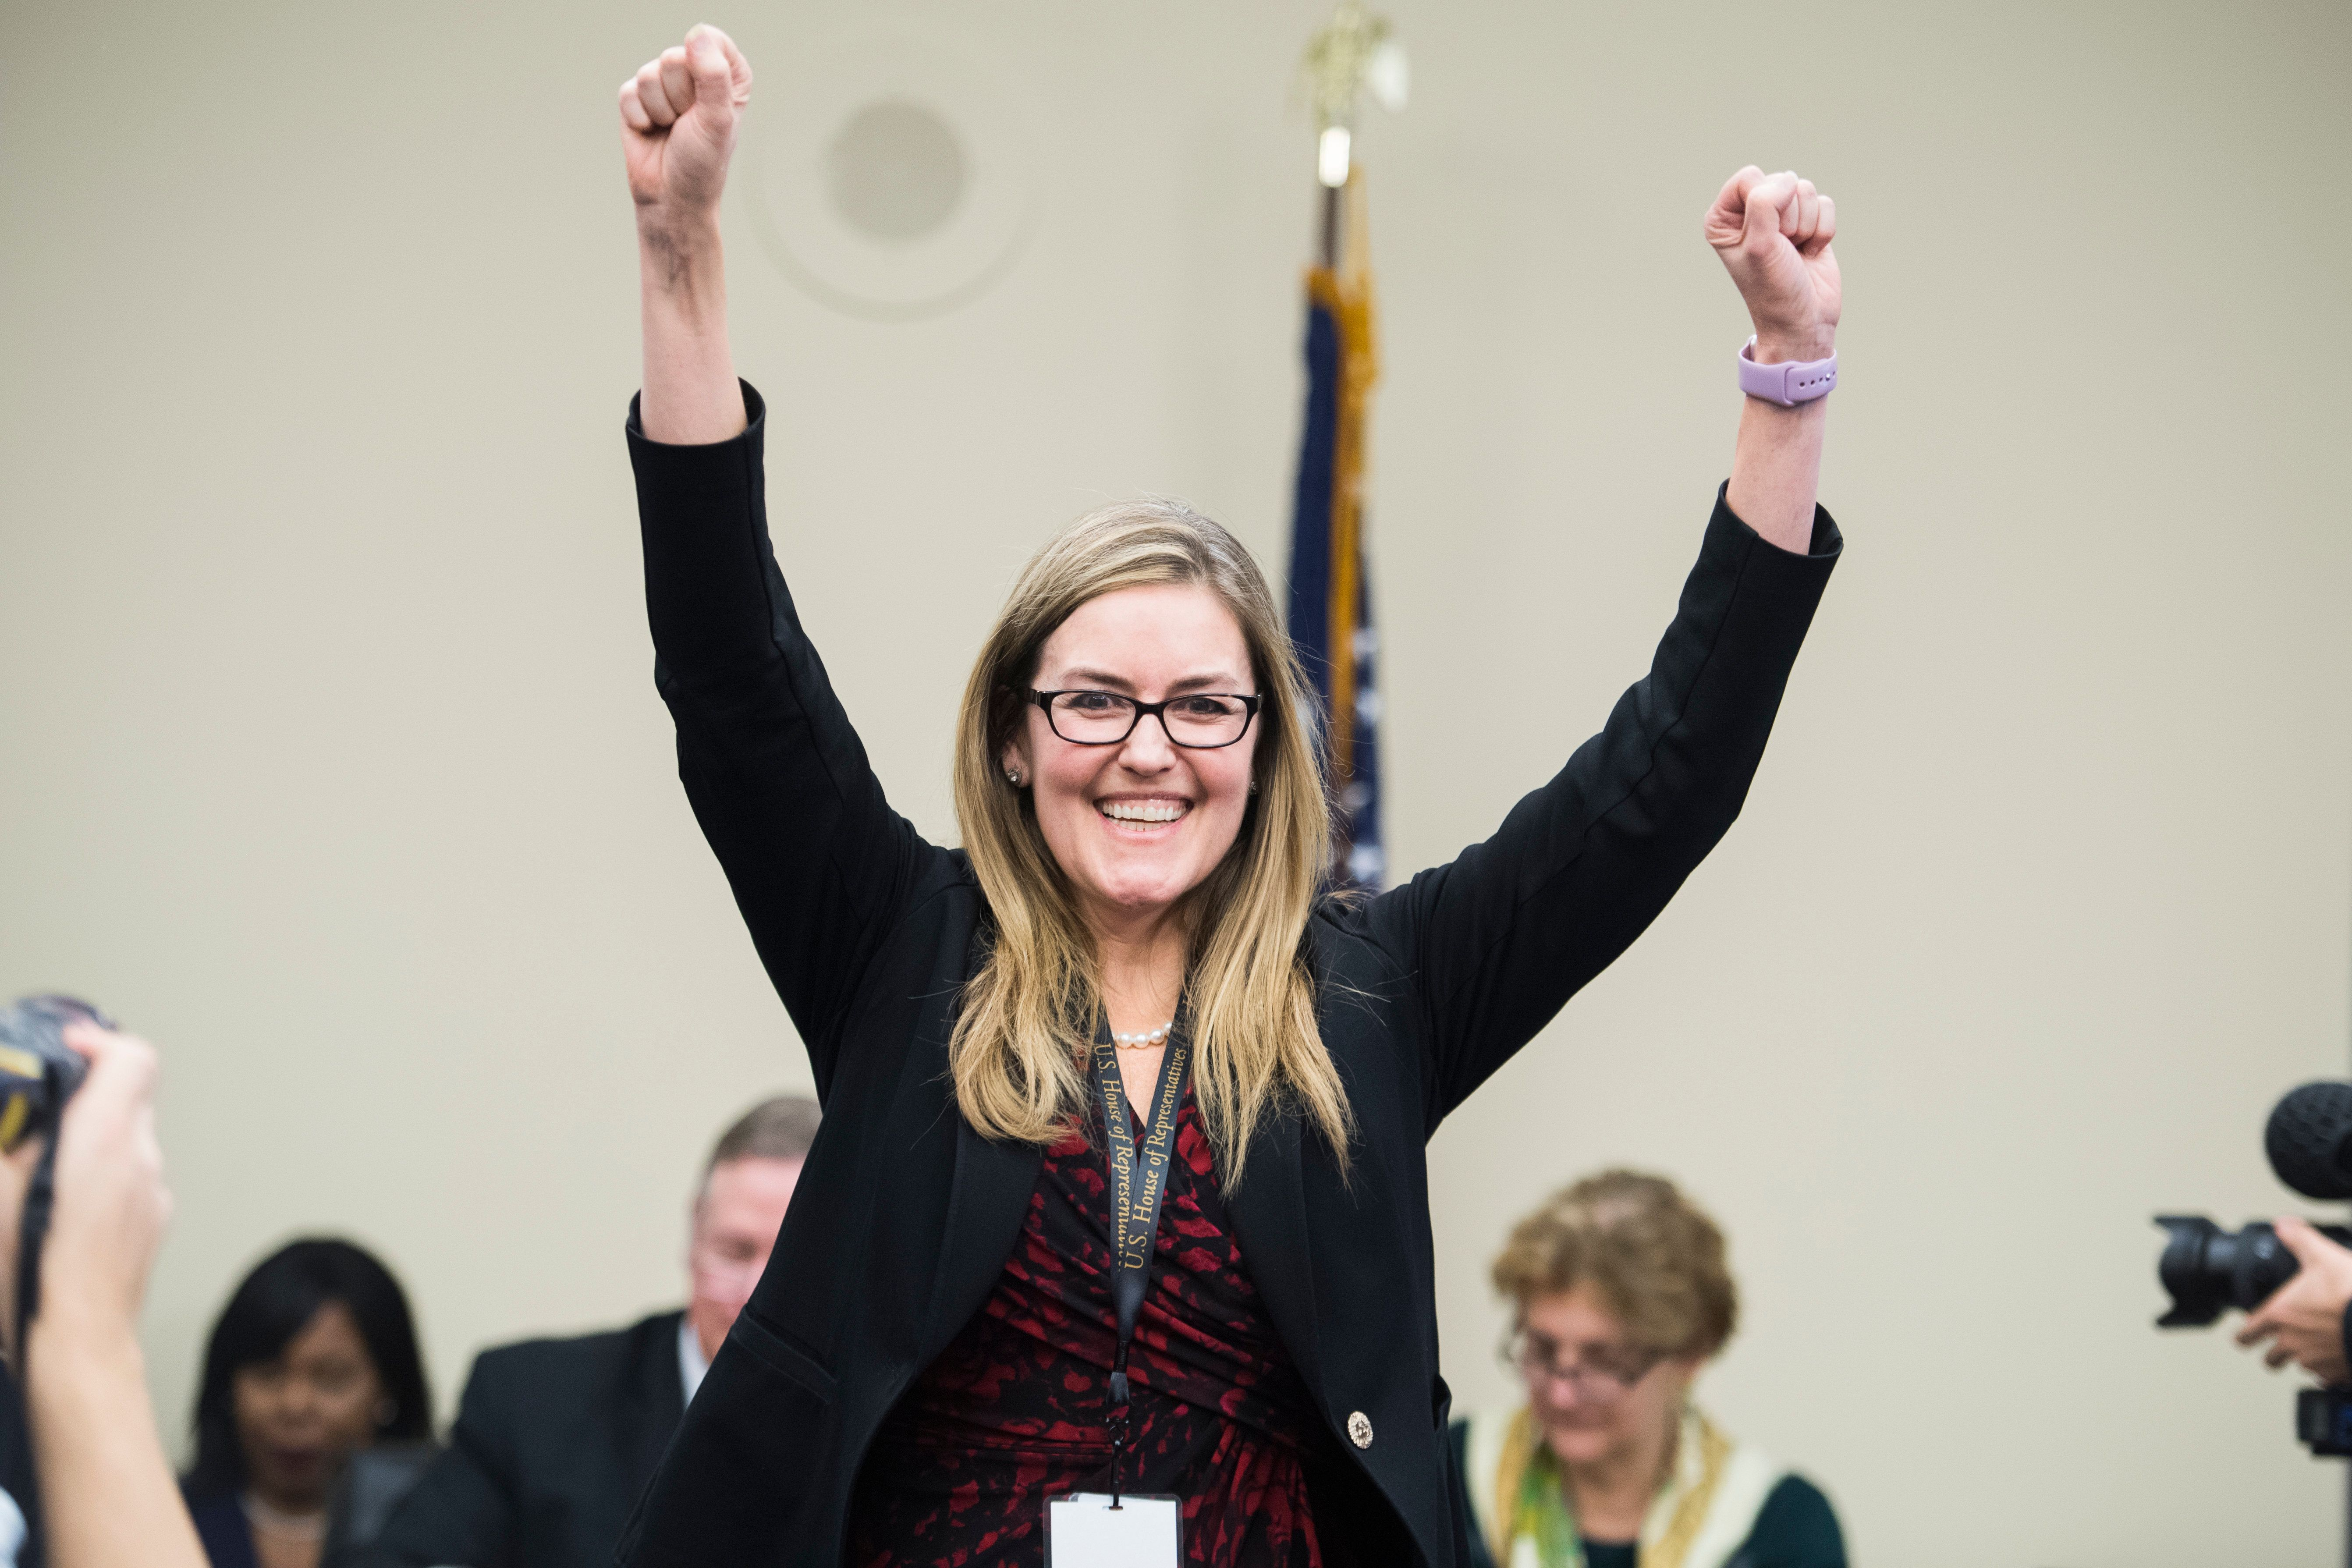 UNITED STATES - NOVEMBER 30: Rep.-elect Jennifer Wexton, D-Va., attends the new member room lottery draw for office space in Rayburn Building on November 30, 2018. (Photo By Tom Williams/CQ Roll Call)